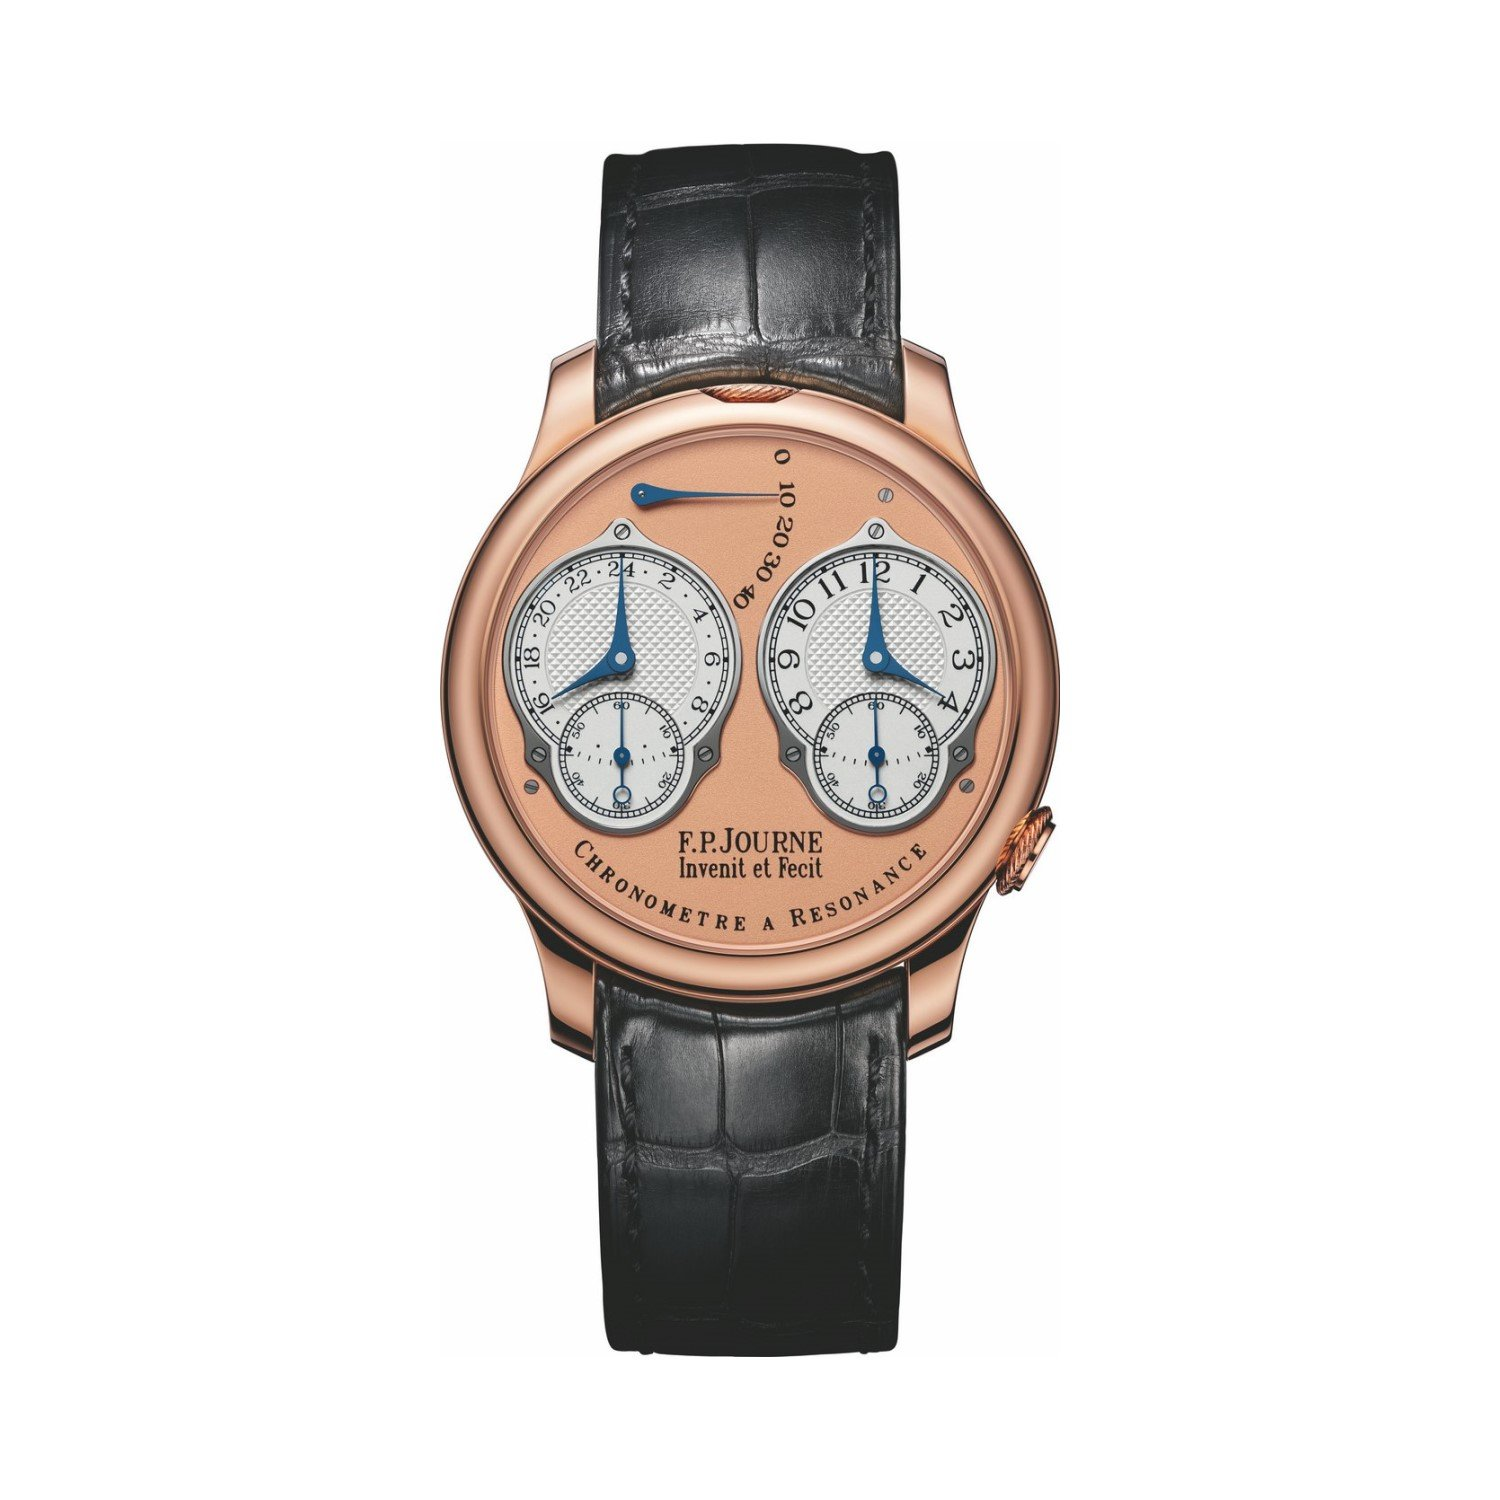 Montre F.P. Journe Souveraine Chronomètre à Résonance